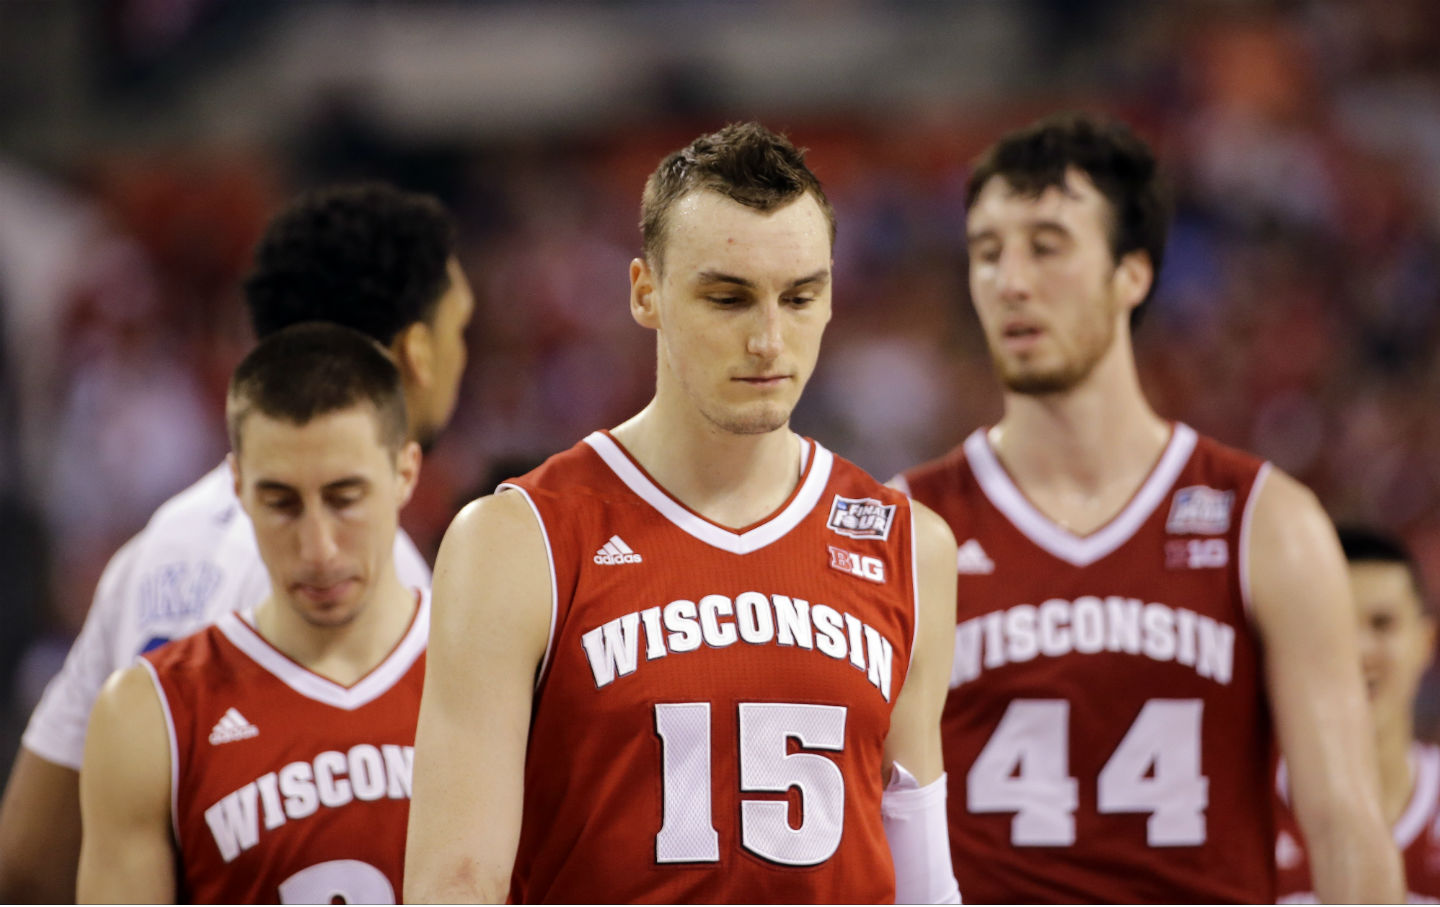 new style 40093 b6e86 The Wisconsin Badgers fell to the Duke Blue Devils 68-63 in last night s  NCAA men s basketball championship game. (AP Photo David J. Phillip)